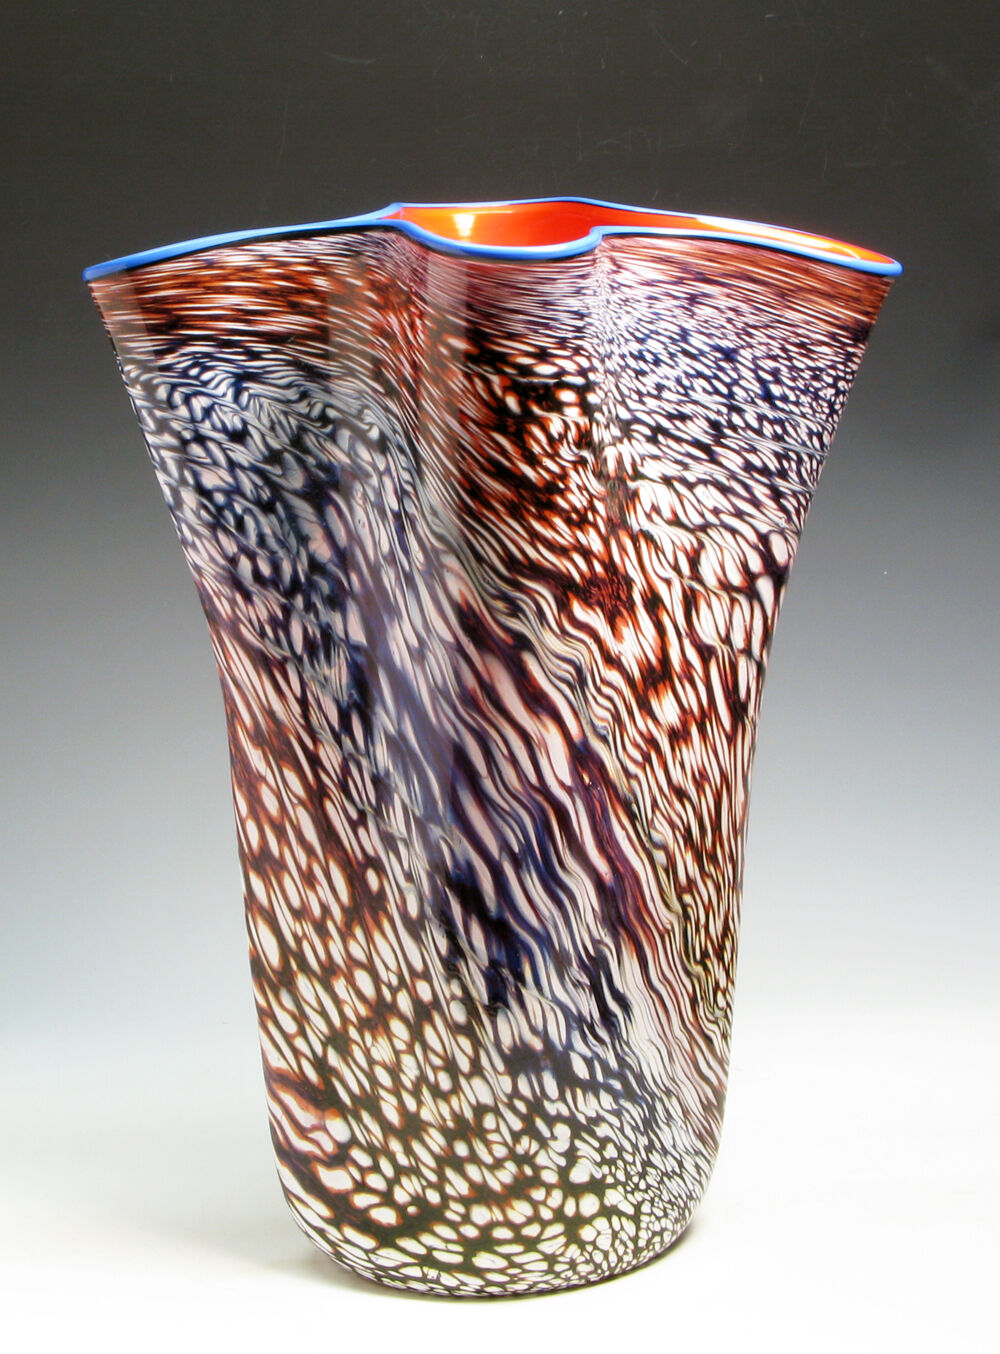 Superb Art Glass Vase Vase Vase by PHILABAUM   CARLSON from the Perseid Series of 1985 1c5639